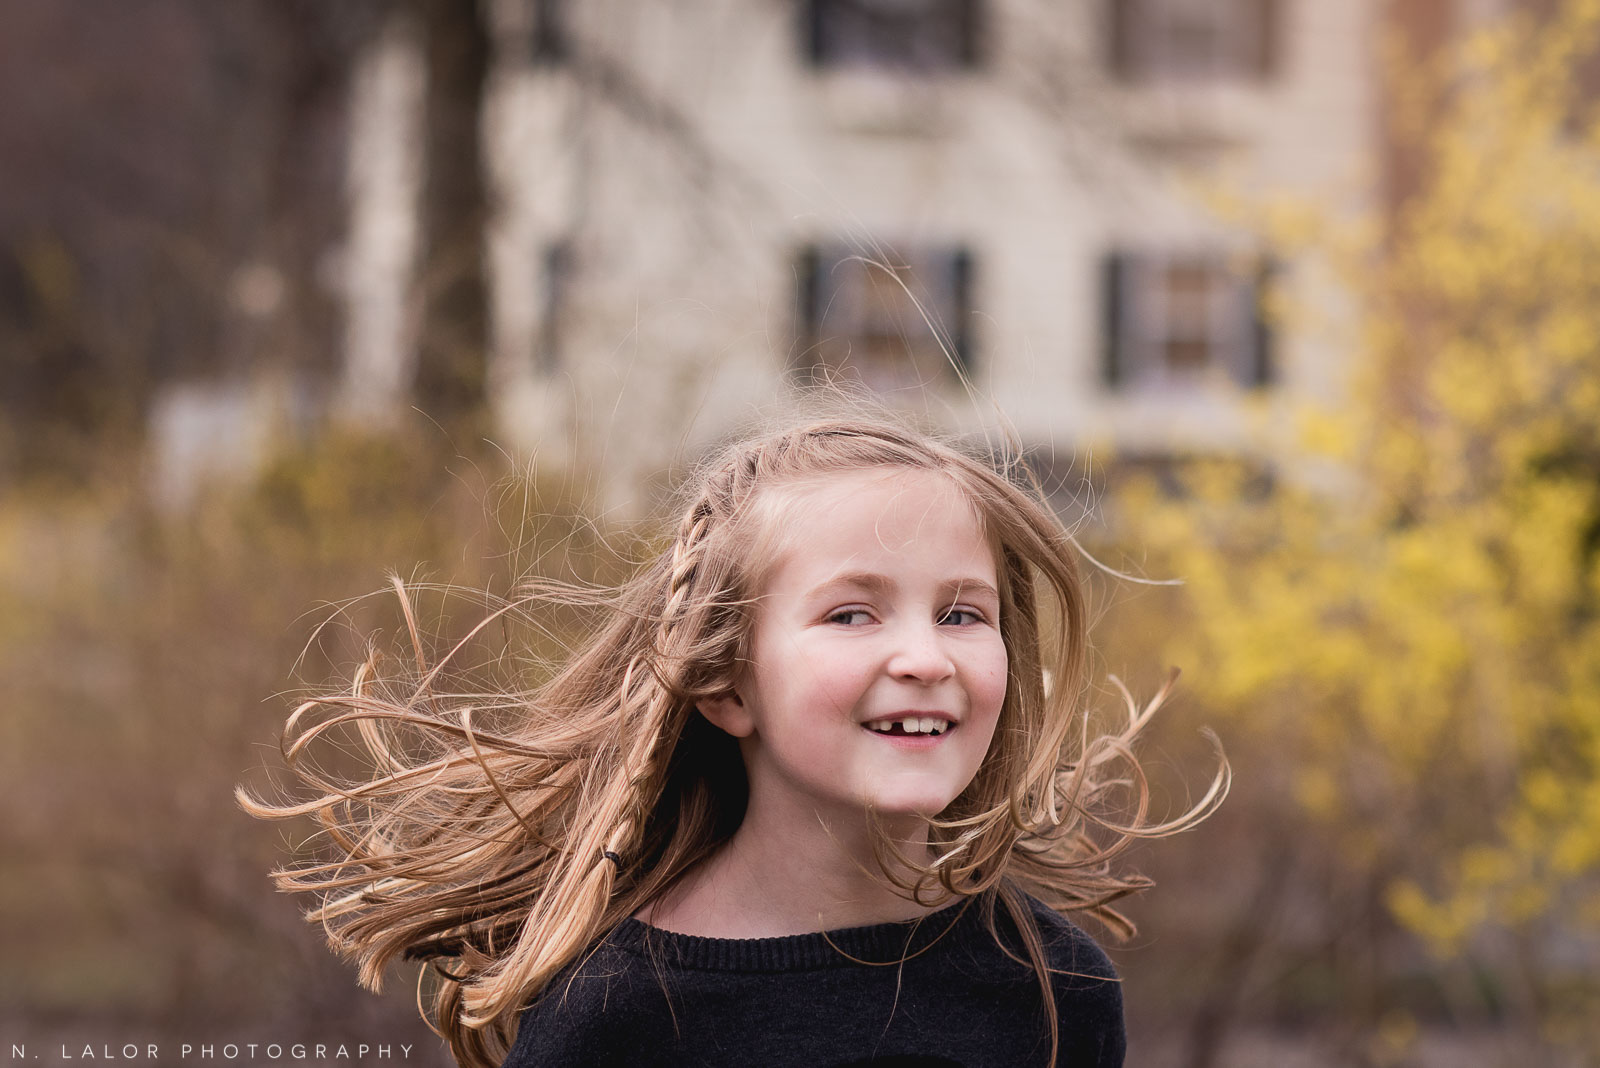 Artistic flying-hair portrait of a 7-year old girl. Editorial-style photo session with N. Lalor Photography. Darien, CT.